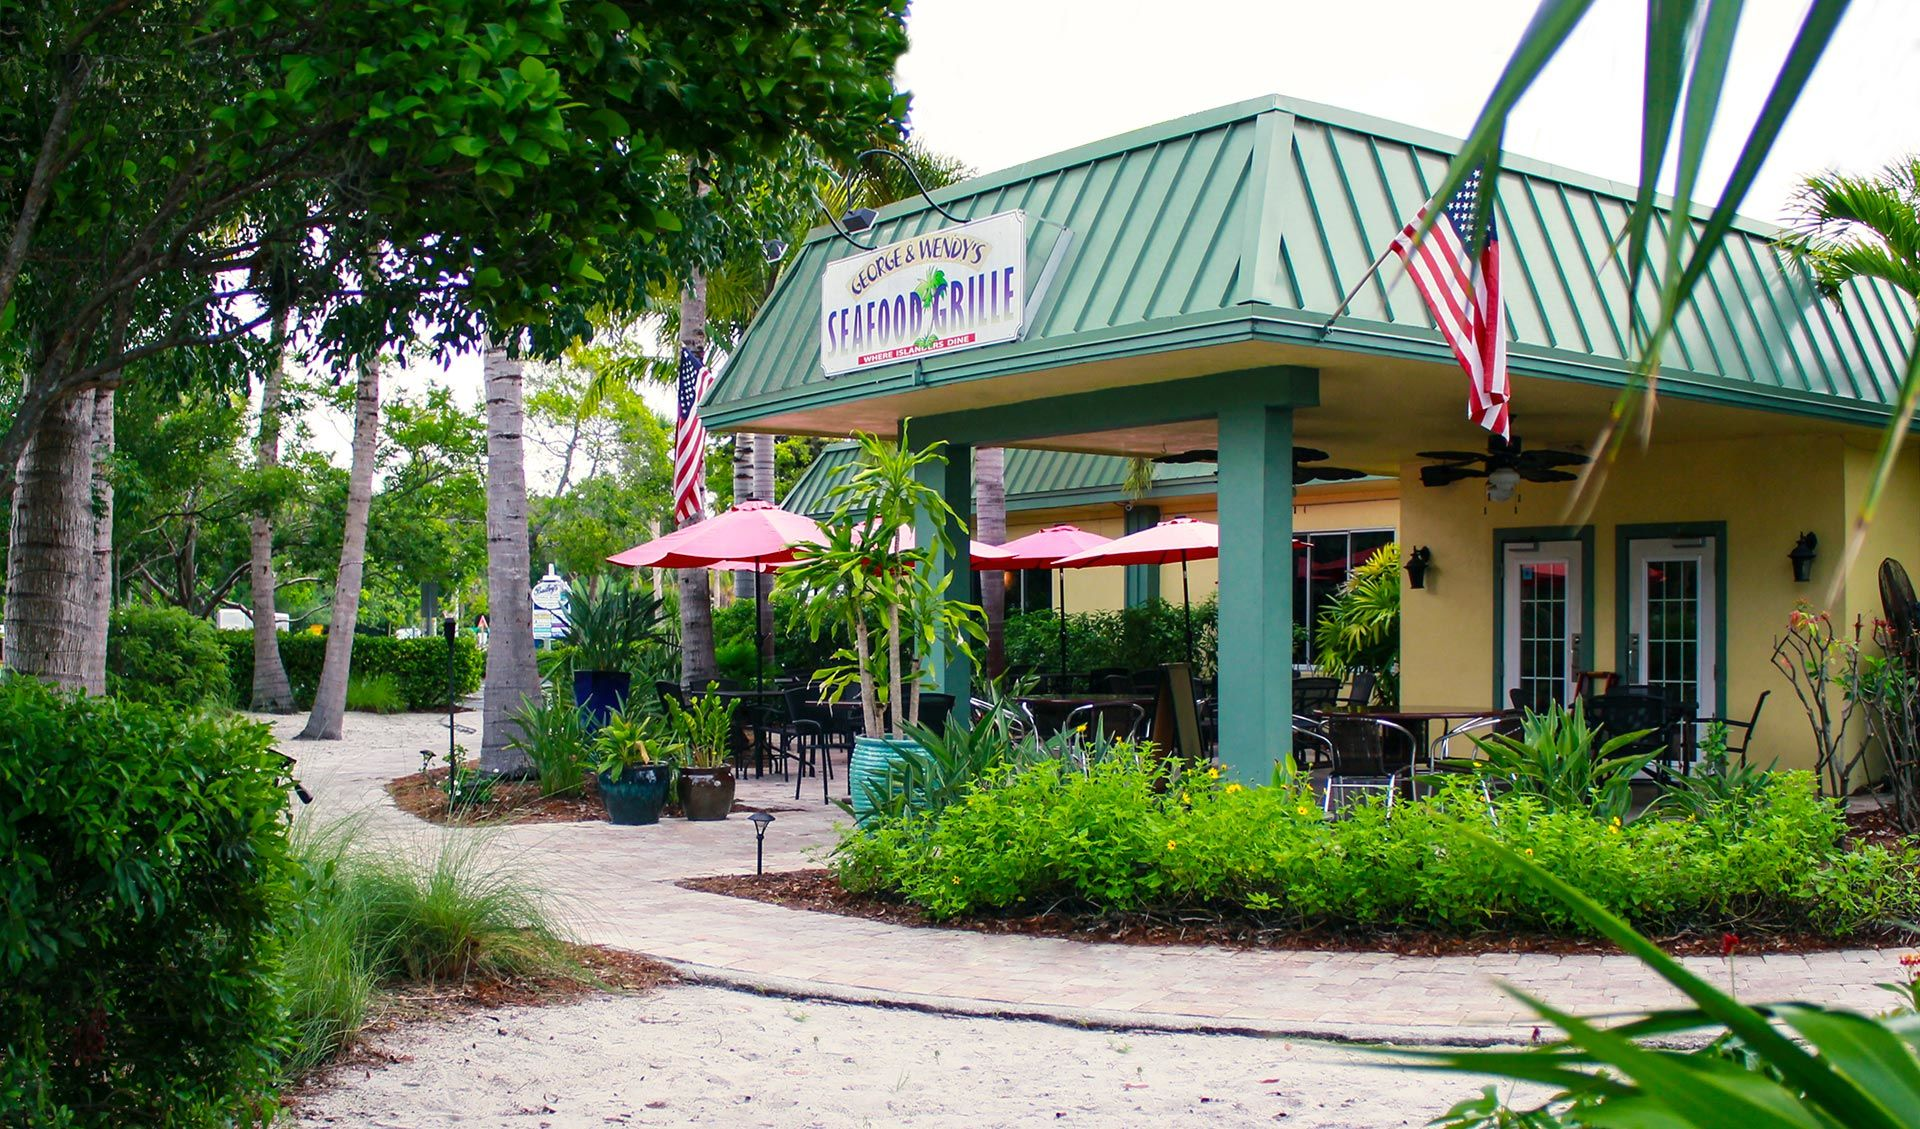 Sanibel Seafood Grille outside seating